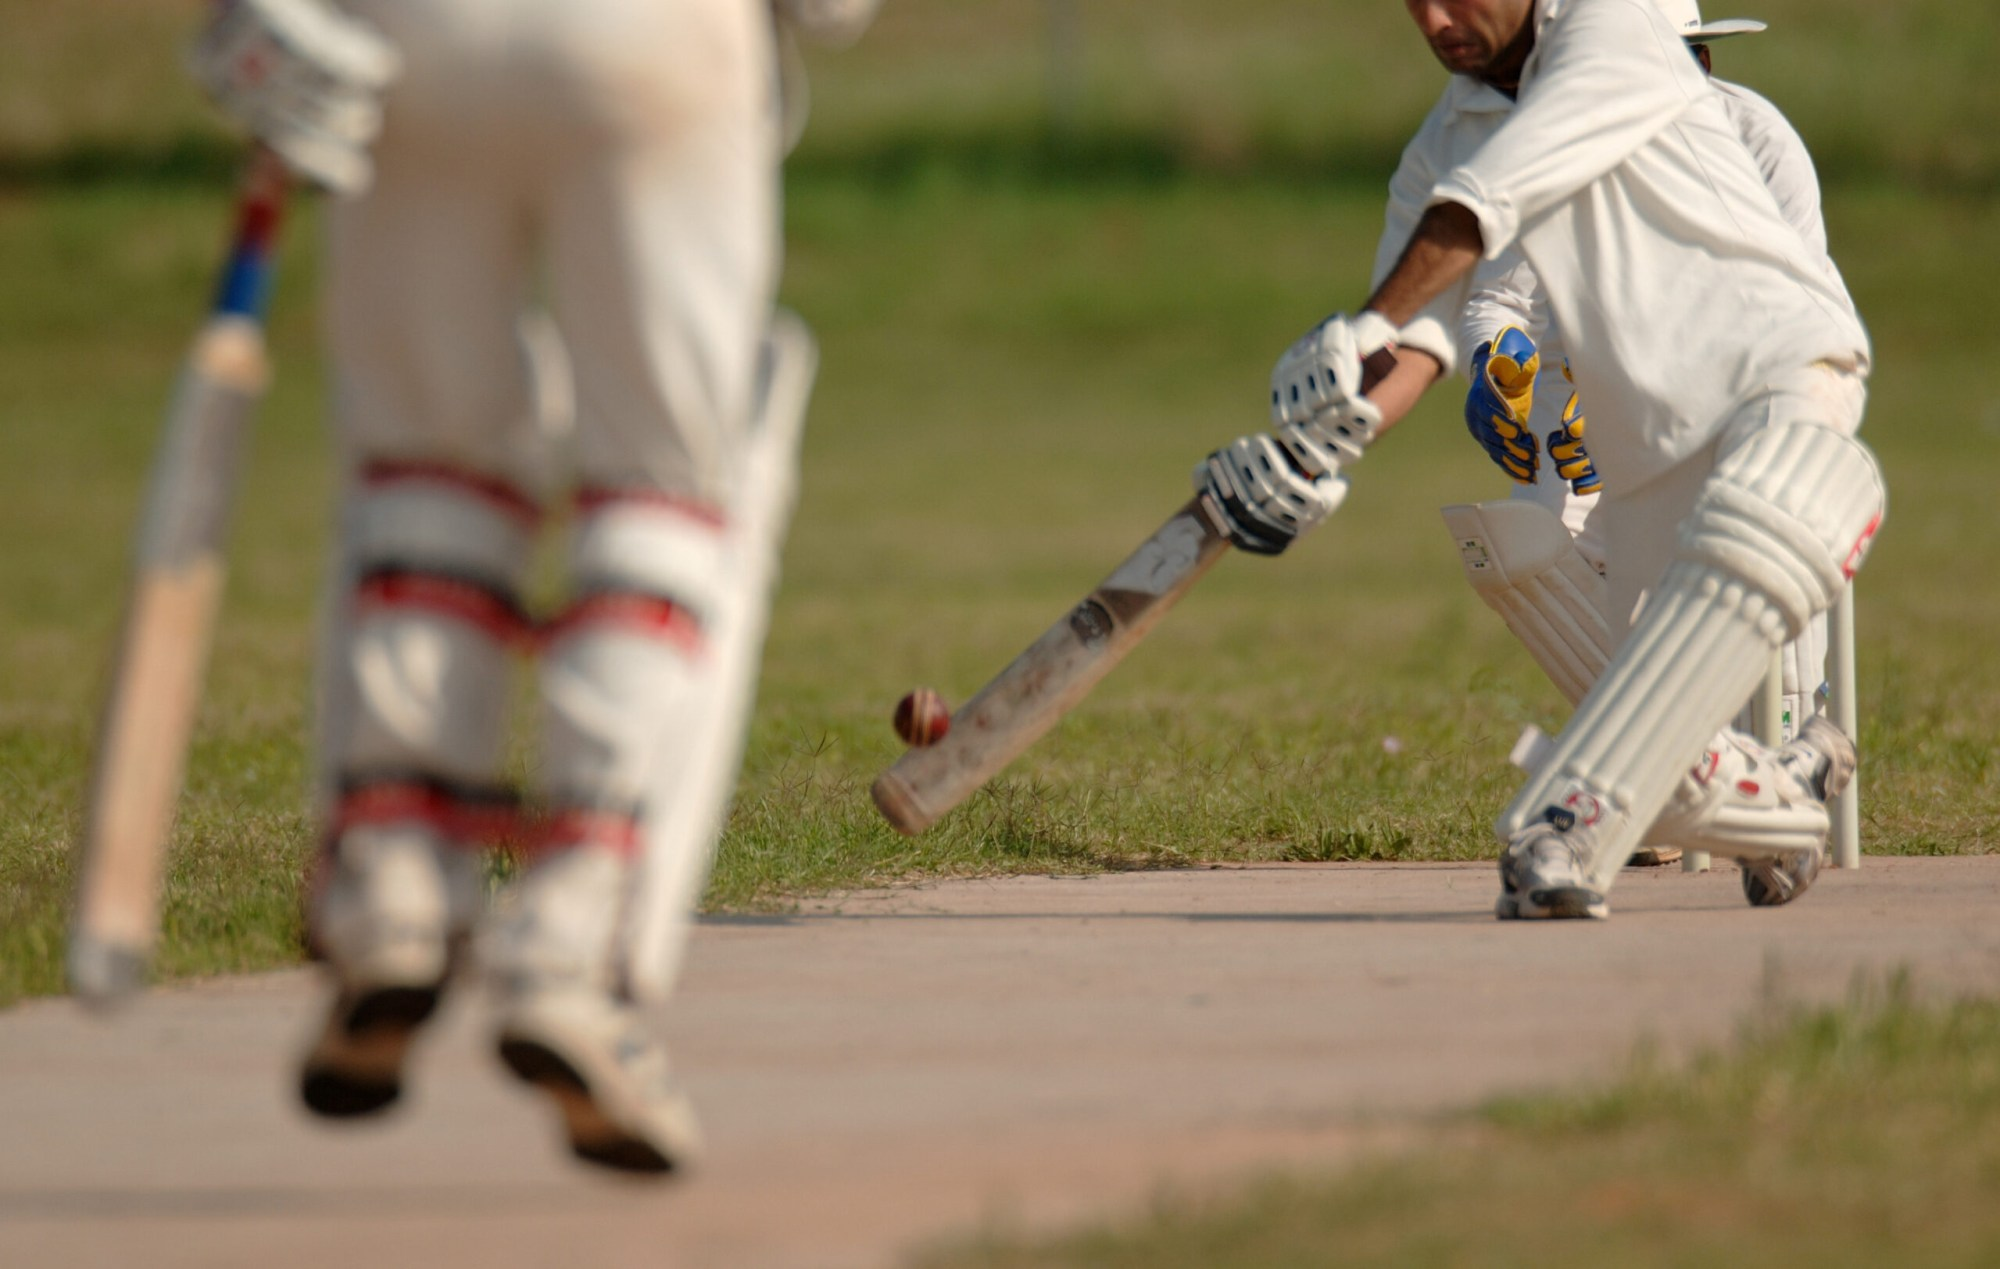 Yorkshire Cricket County Club denies claims of institutional racism